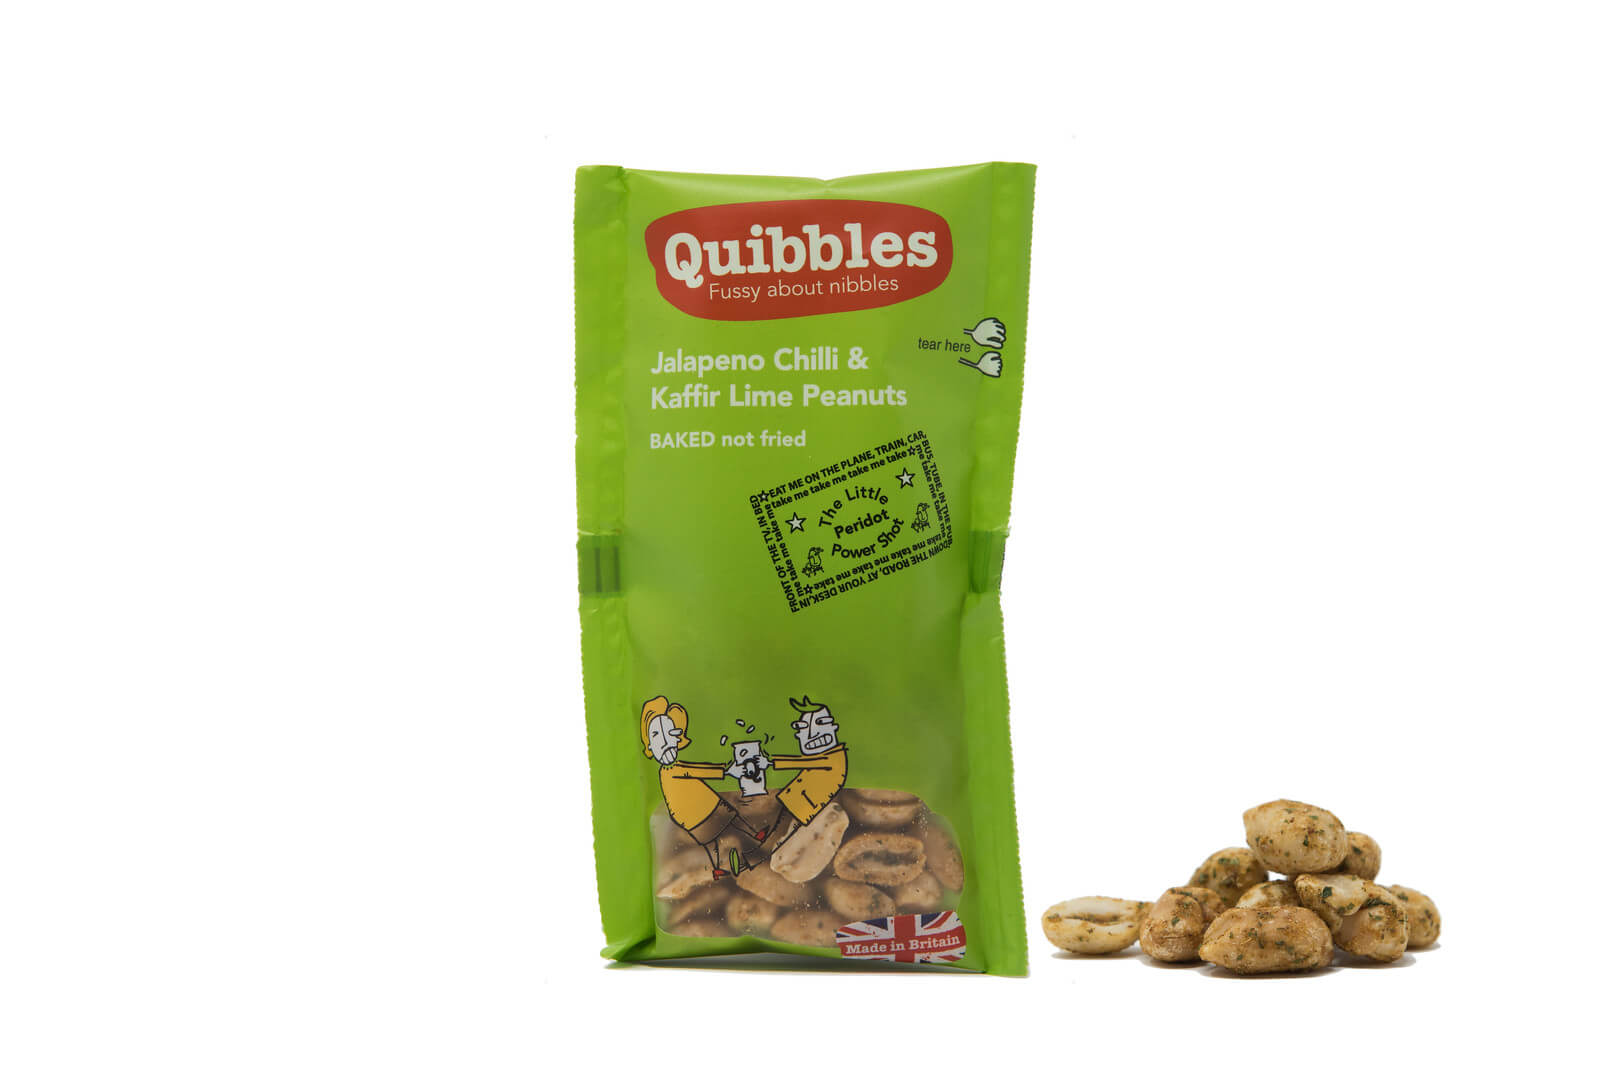 Office Pantry Quibbles Jalapeno Chilli & Kaffir Lime Peanuts.jpg